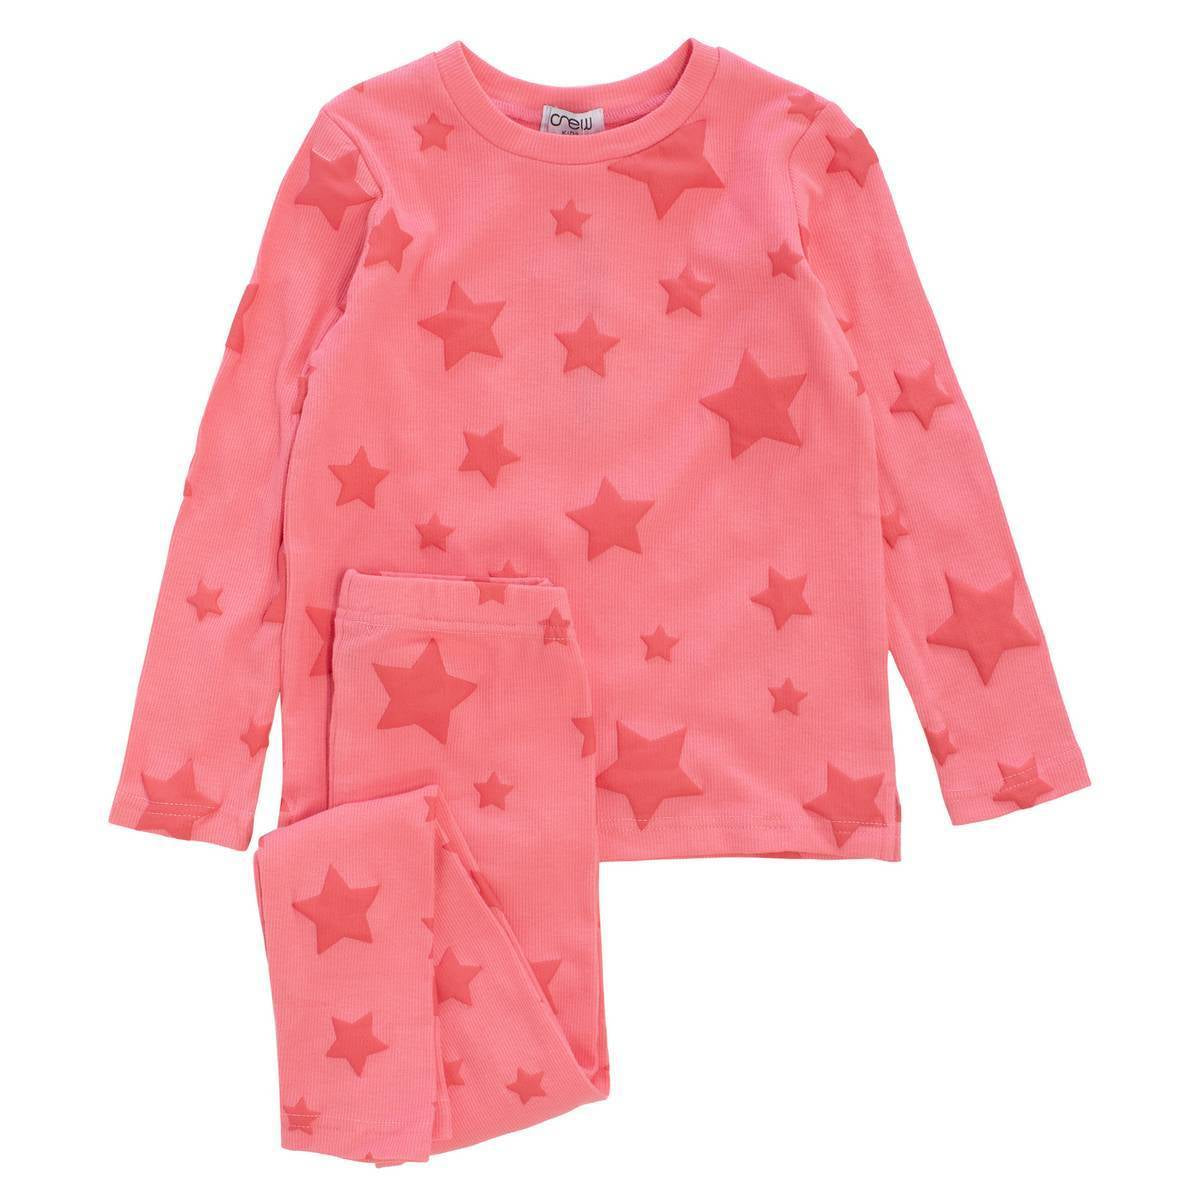 Crew Pink Star Lounge Set